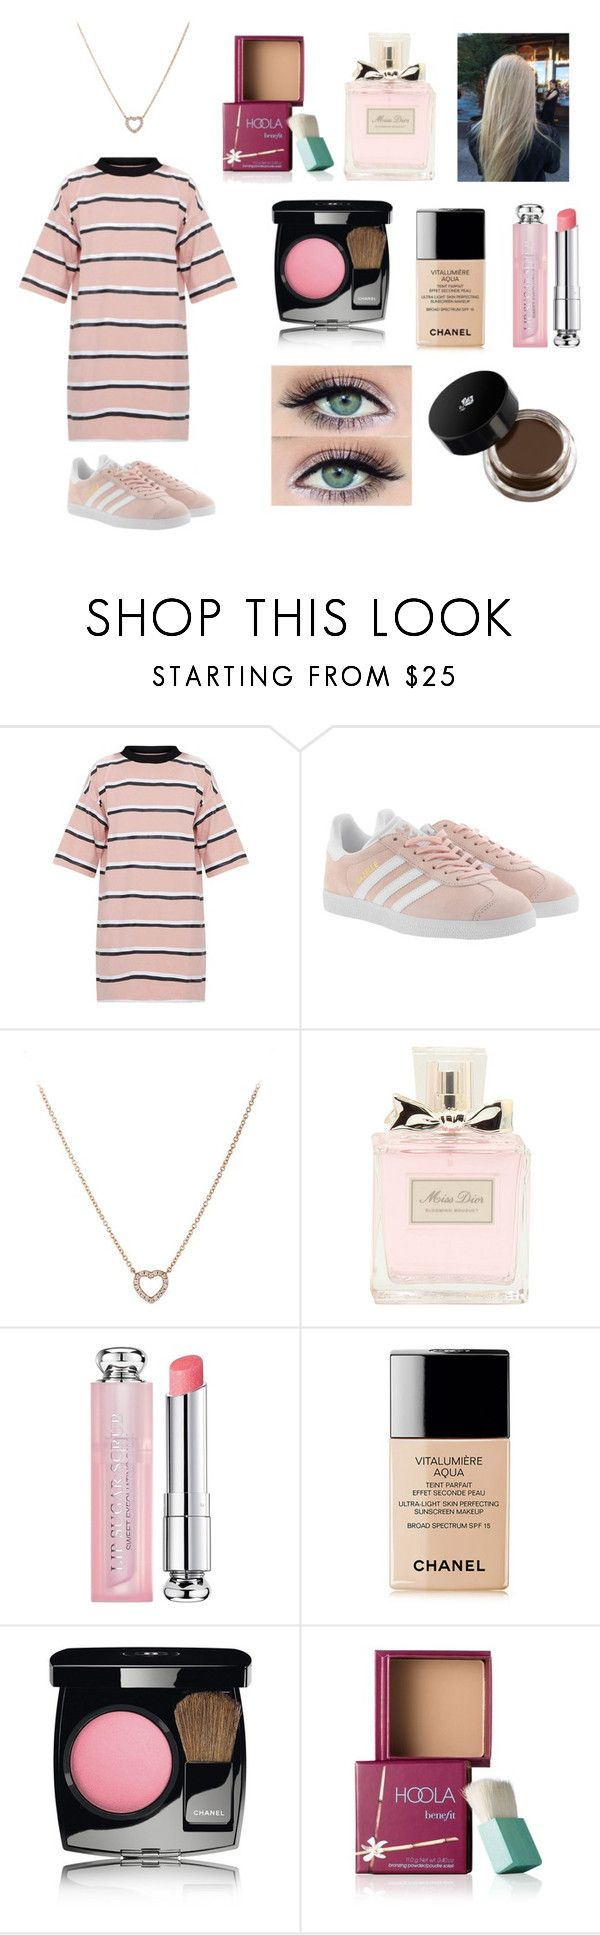 """""""THINK PINK"""" by indiac-joseph on Polyvore featuring adidas Originals, Tiffany & Co., Christian Dior, Chanel, Benefit and Lancôme"""